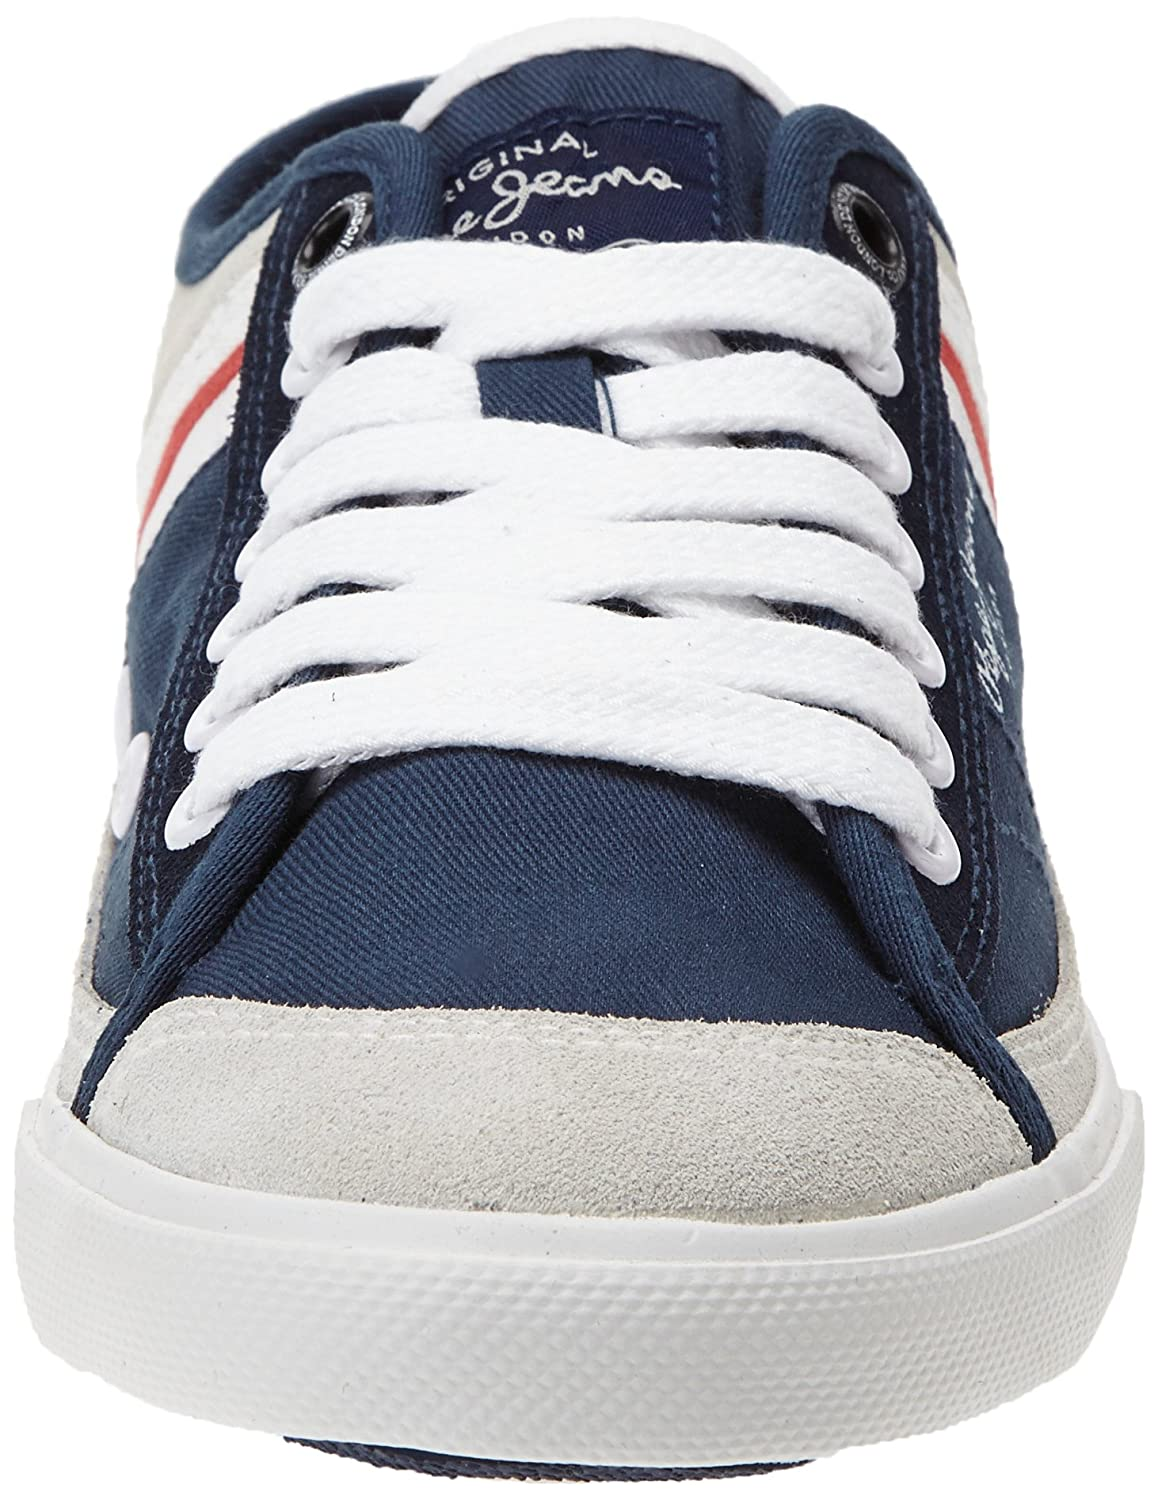 Pepe Jeans London TENIS PUNCHING Herren Sneakers